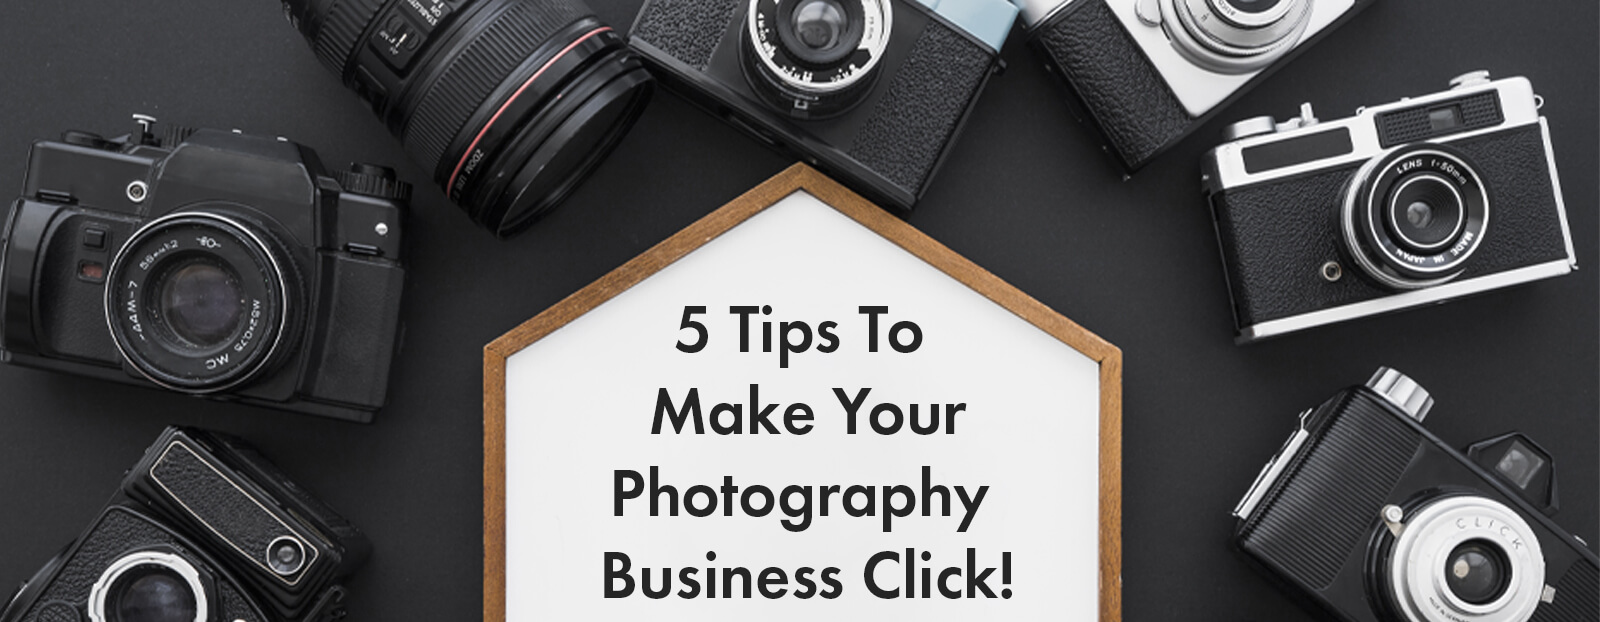 5 Tips To Make Your Photography Business Click!